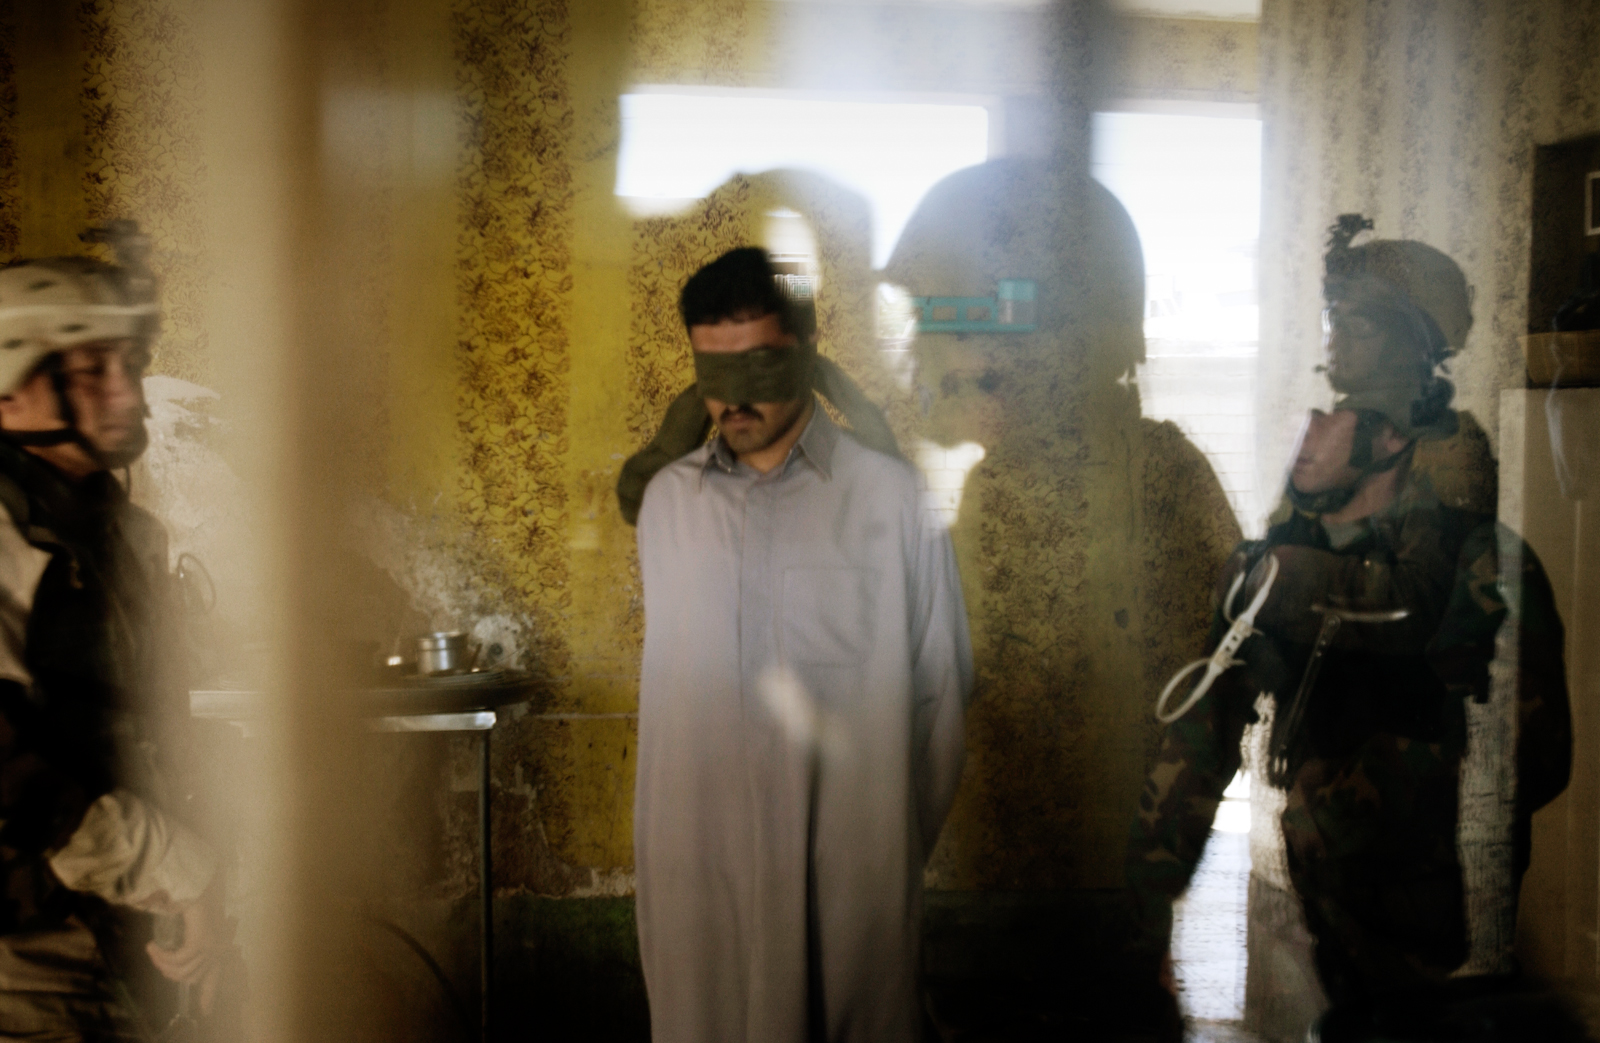 Soldiers of the 1st Battalion search house to house for insurgents in the Mula'ab disctrict in Ramadi, an insurgent stronghold west of Baghdad, Iraq, March 05, 2005.